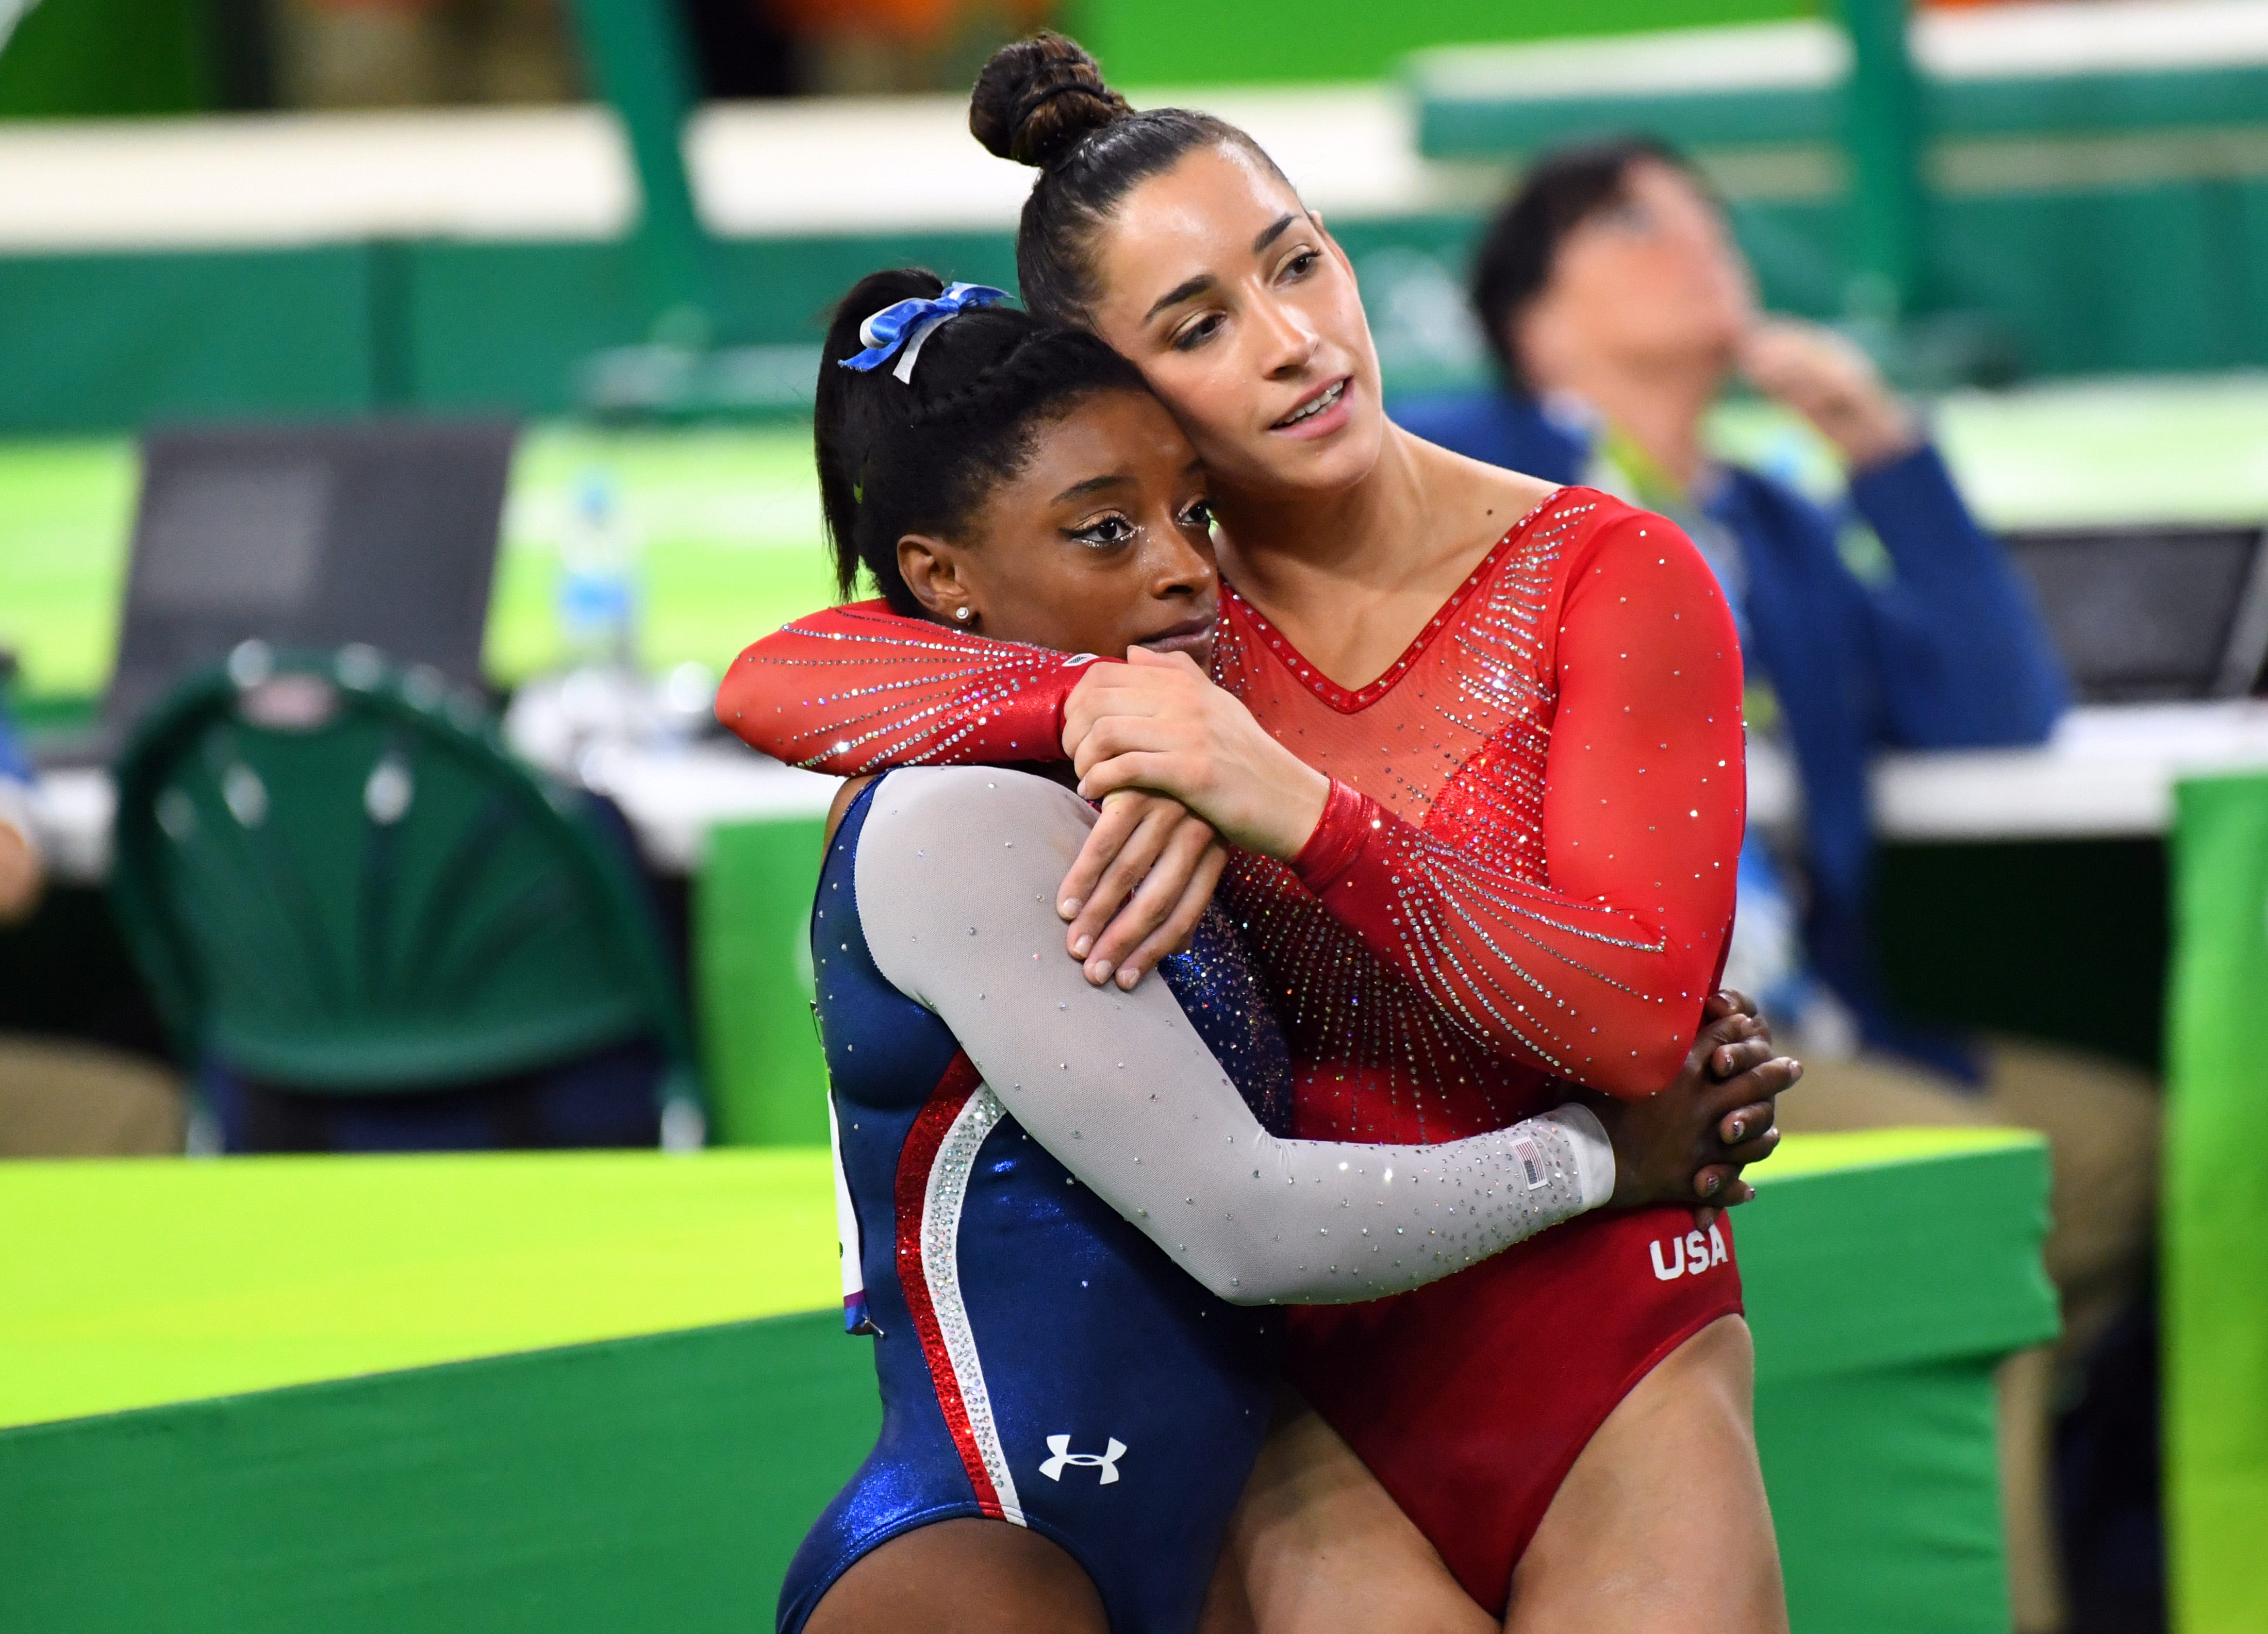 We suffered and continue to suffer : Simone Biles, elite gymnasts blast FBI over failing to stop Larry Nassar abuse